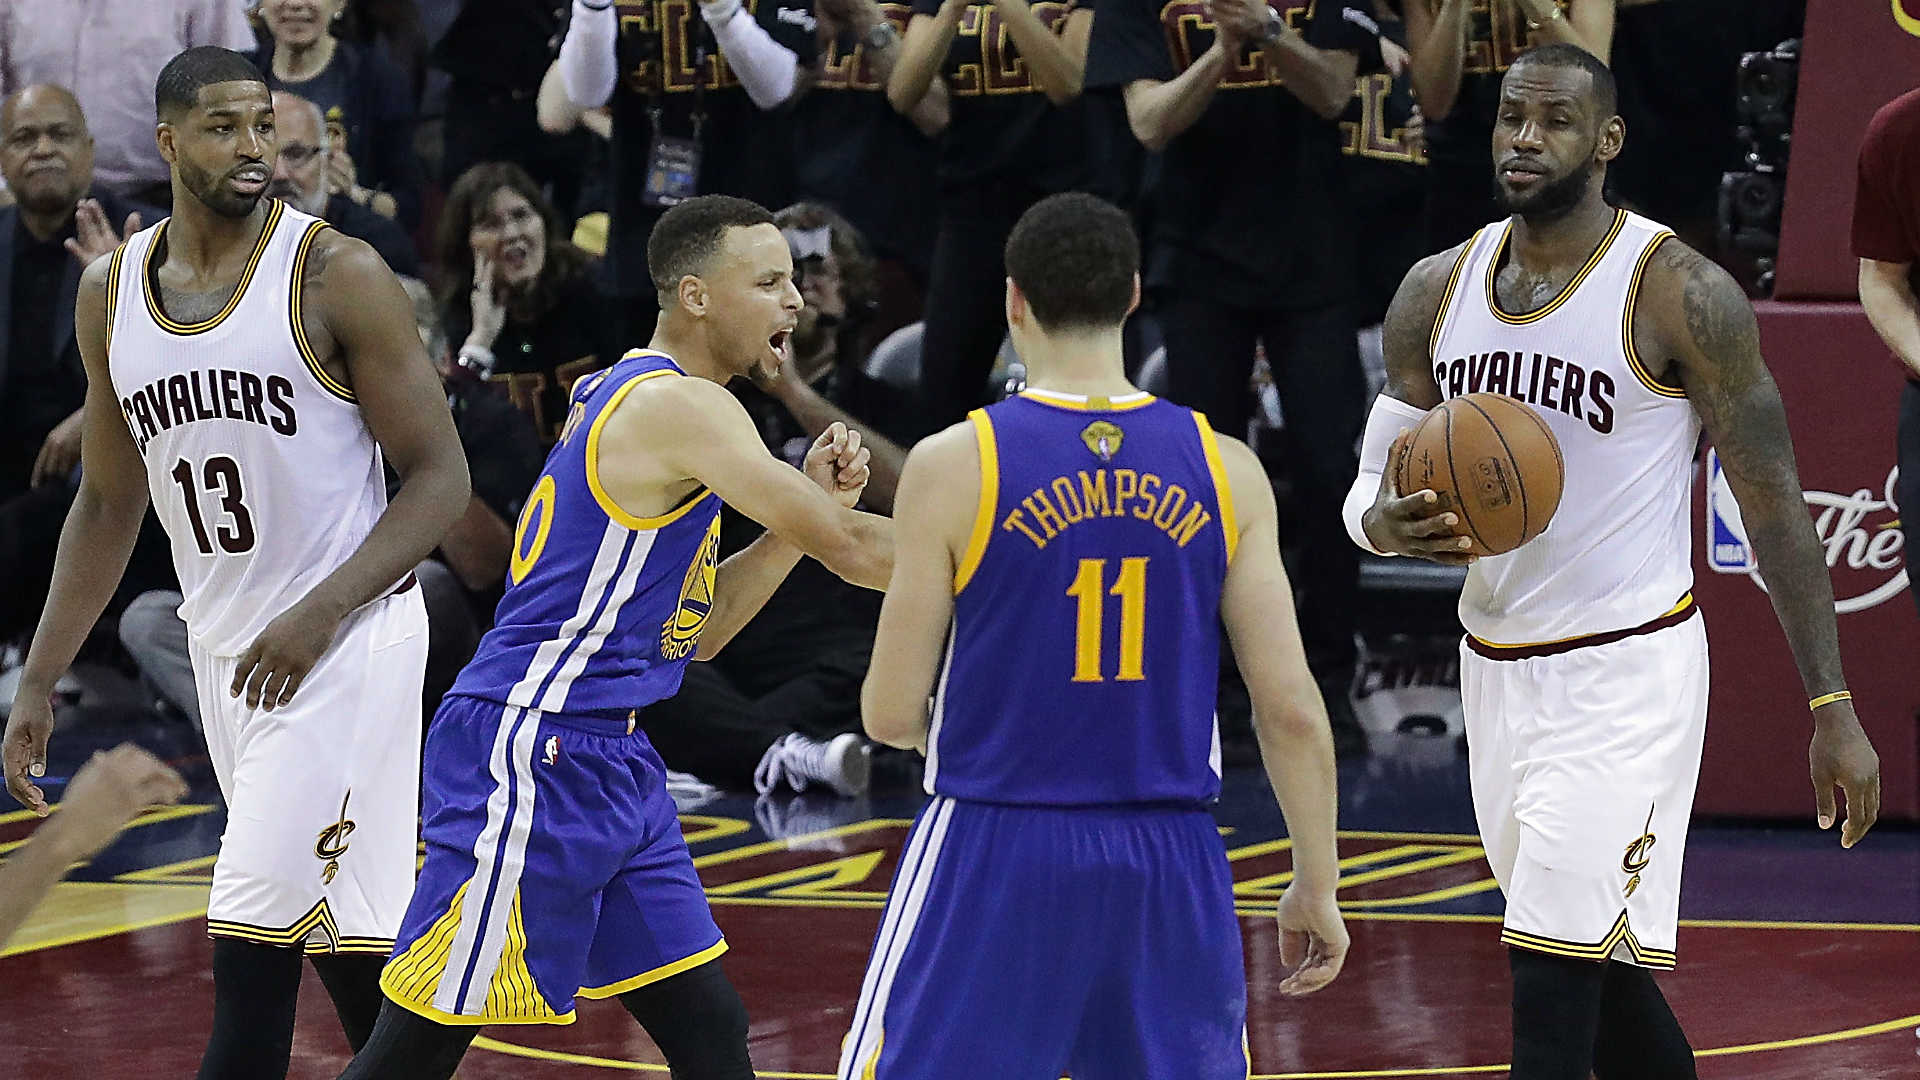 stephen curry fouls out  whips mouthguard  gets ejected